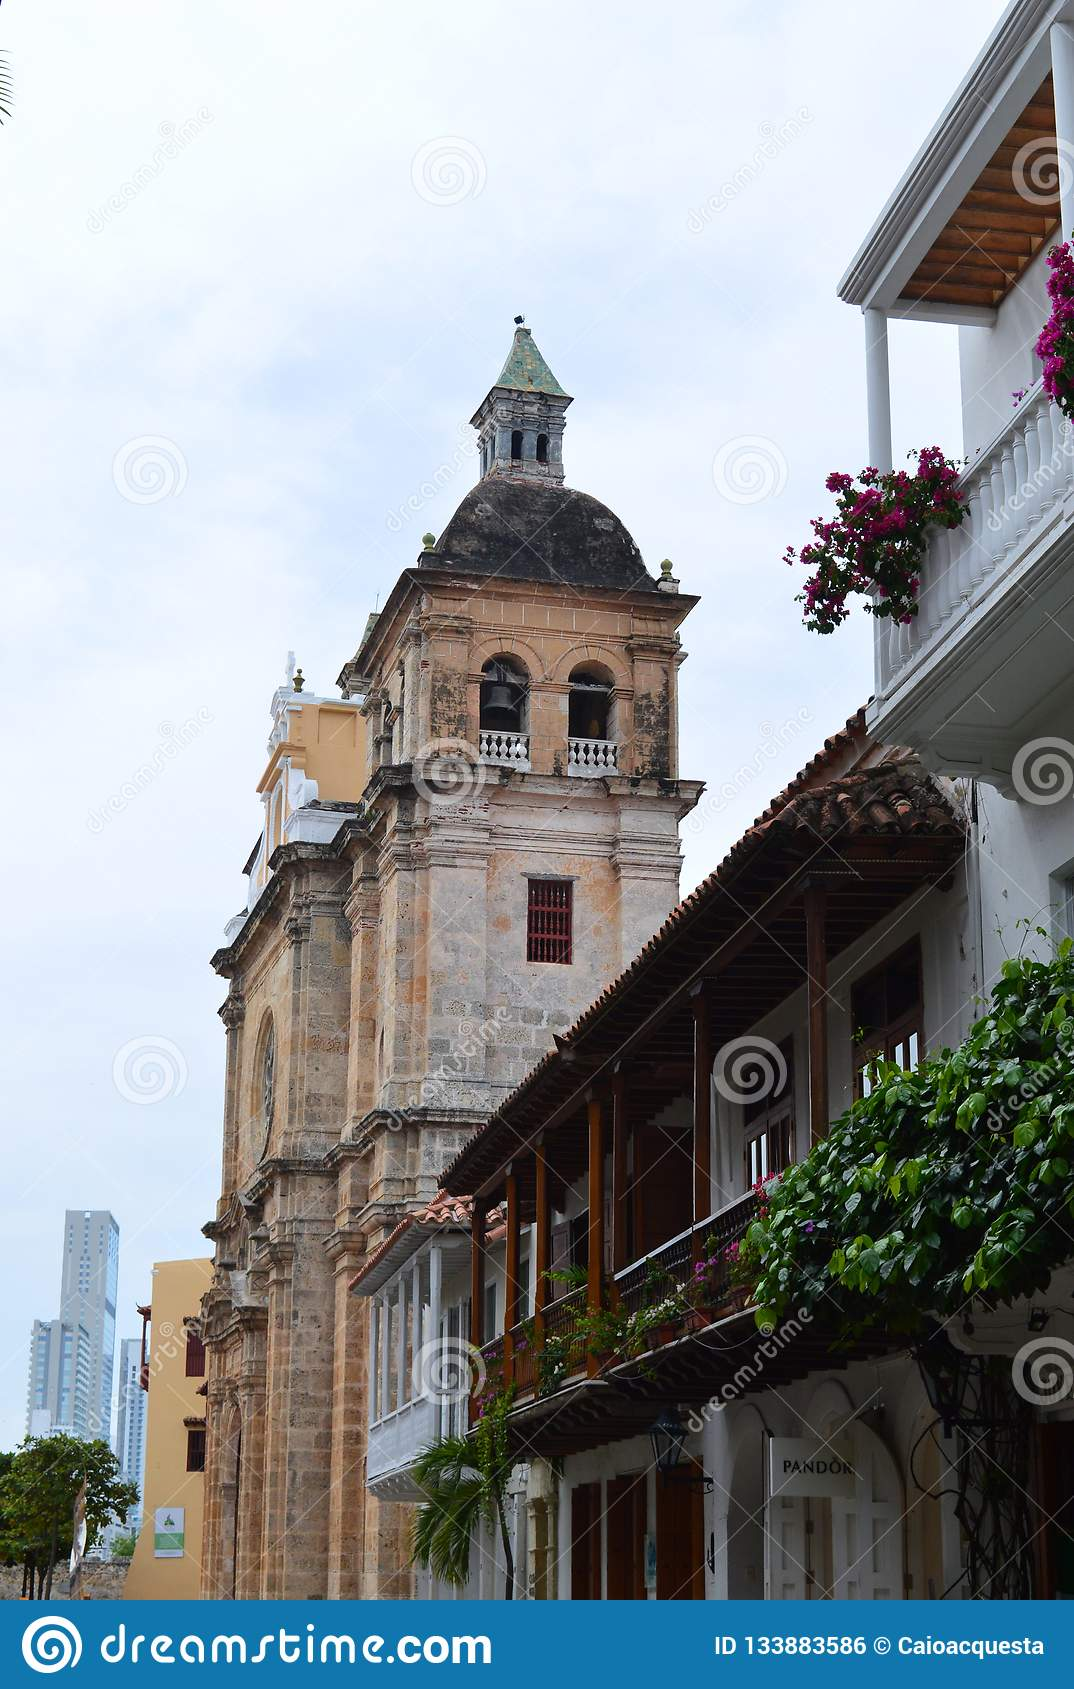 Balconies and church of cartagena